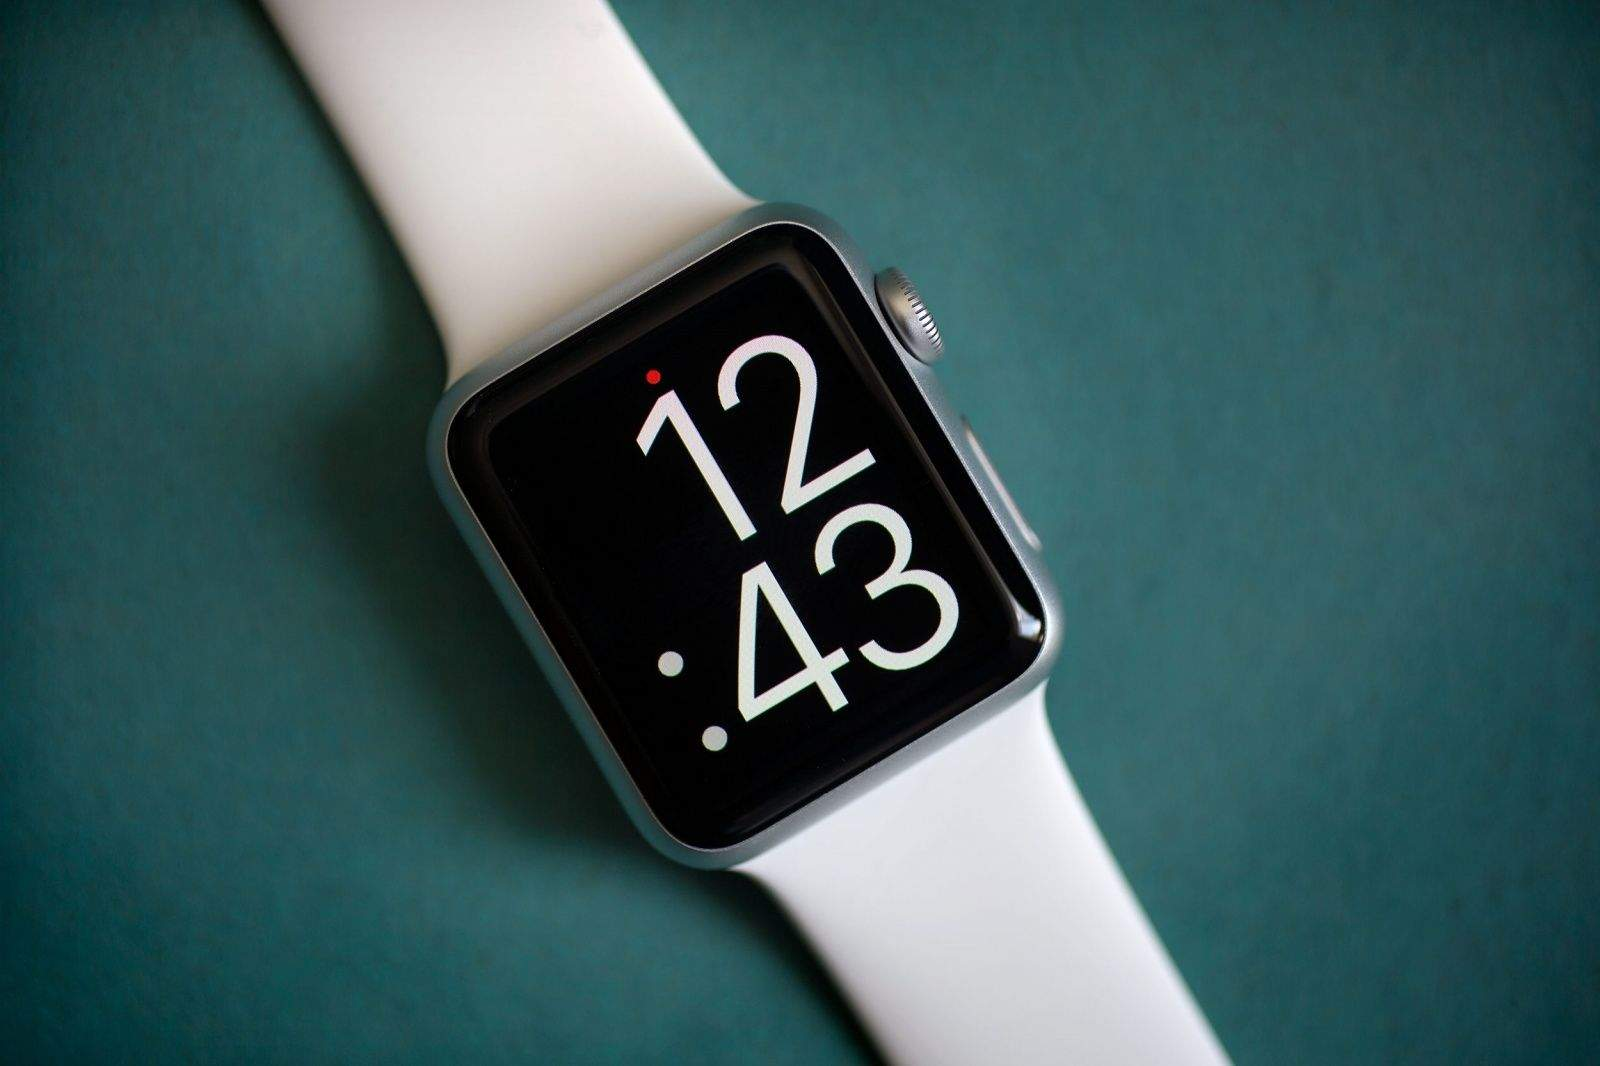 The Apple Watch is gorgeous (and comfy, too).